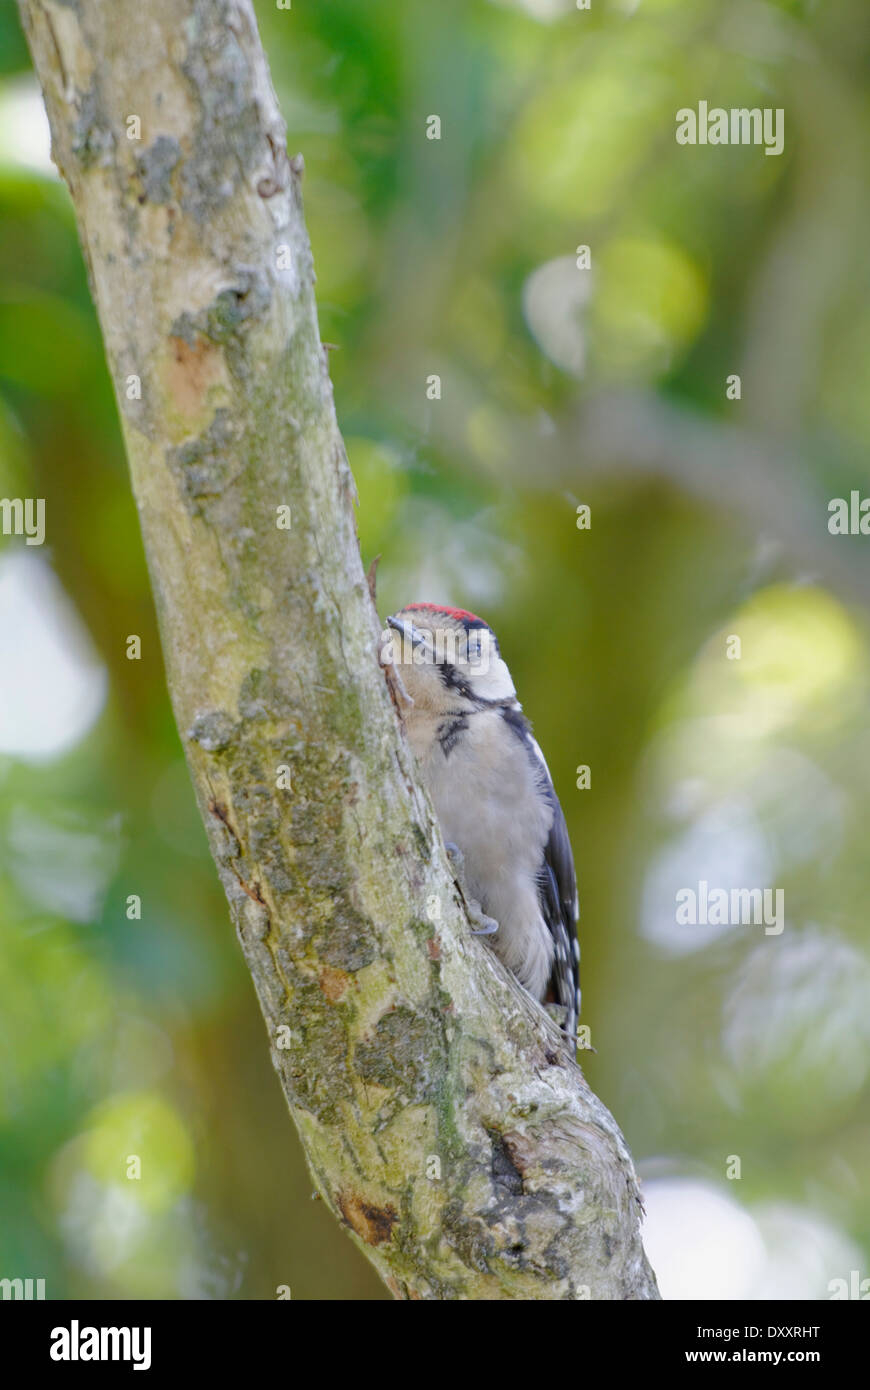 Great spotted woodpecker storing nuts from a feeder - Stock Image